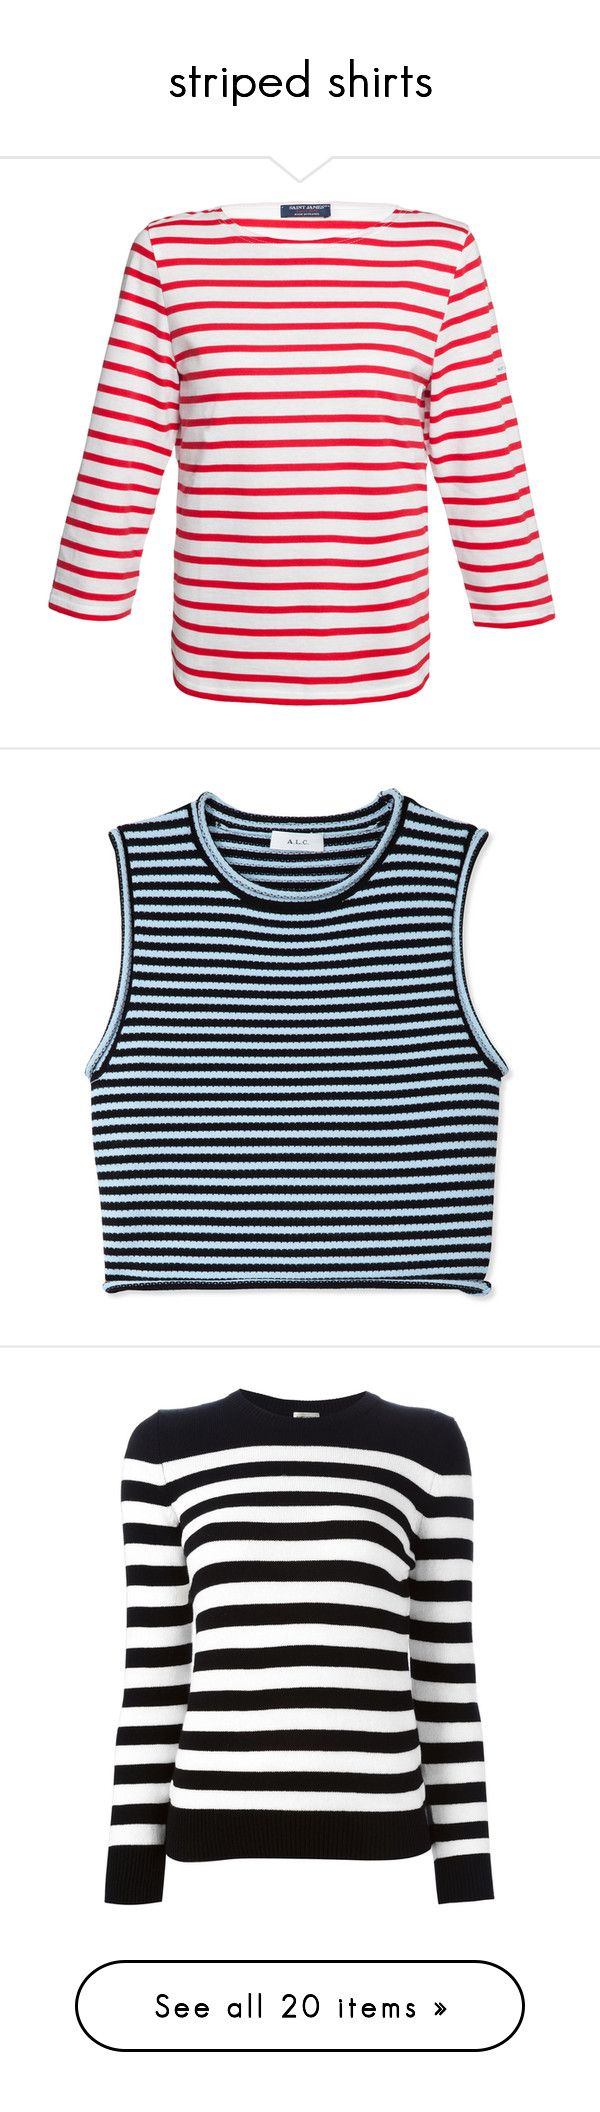 """""""striped shirts"""" by valenciathefriend ❤ liked on Polyvore featuring tops, shirts, red, sailor shirt, white 3/4 sleeve shirt, boat neck tops, 3/4 sleeve tops, 3/4 sleeve shirts, crop tops and tank tops"""